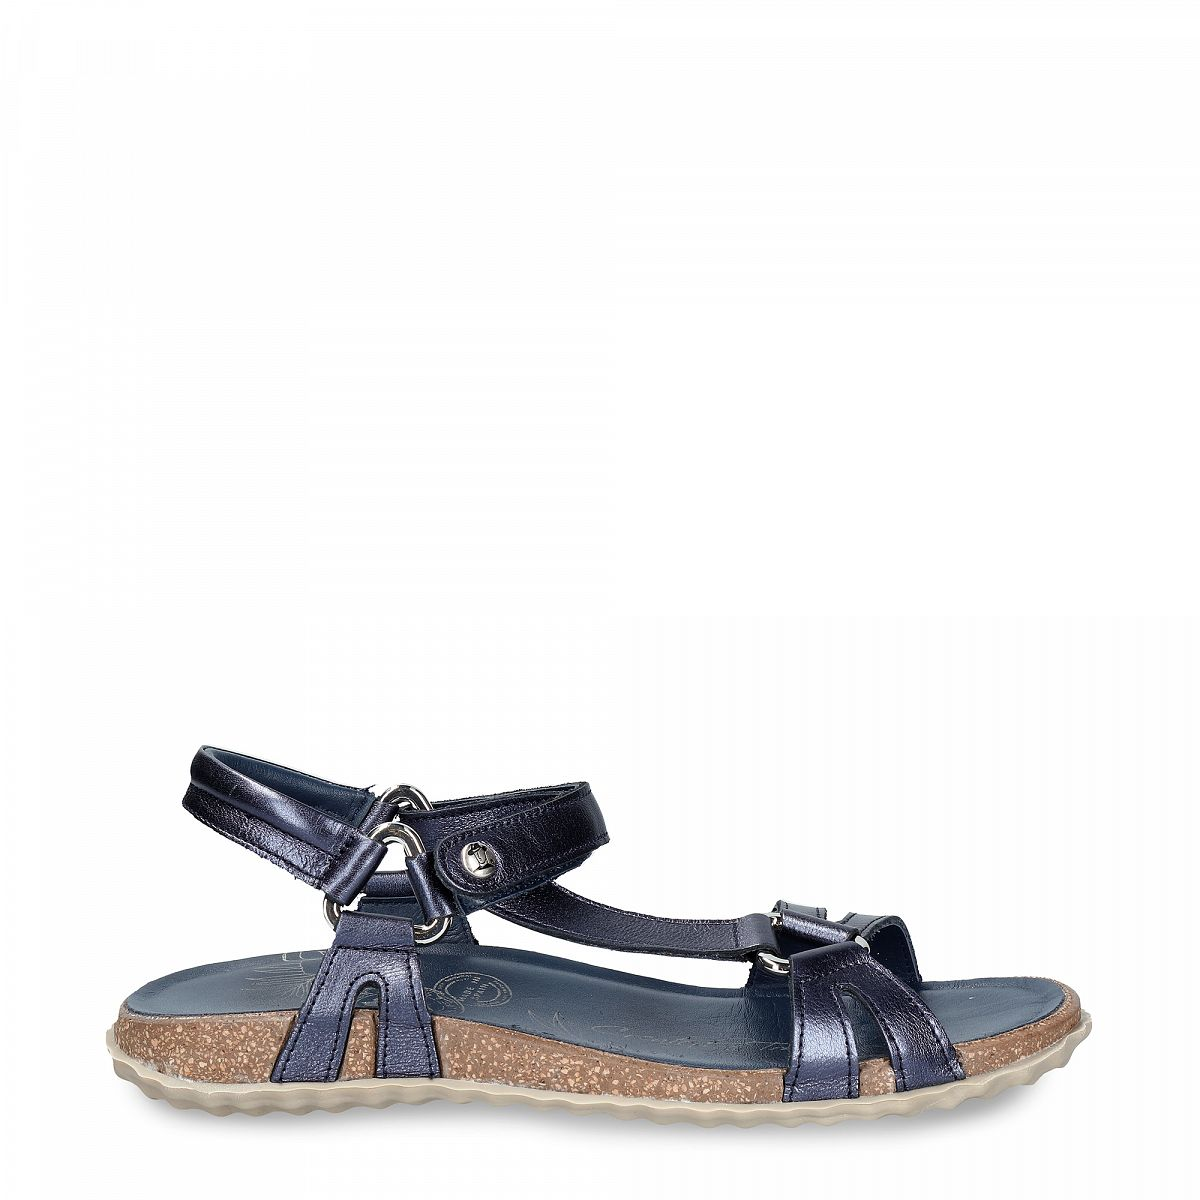 Caribeña Shine Navy blue Napa